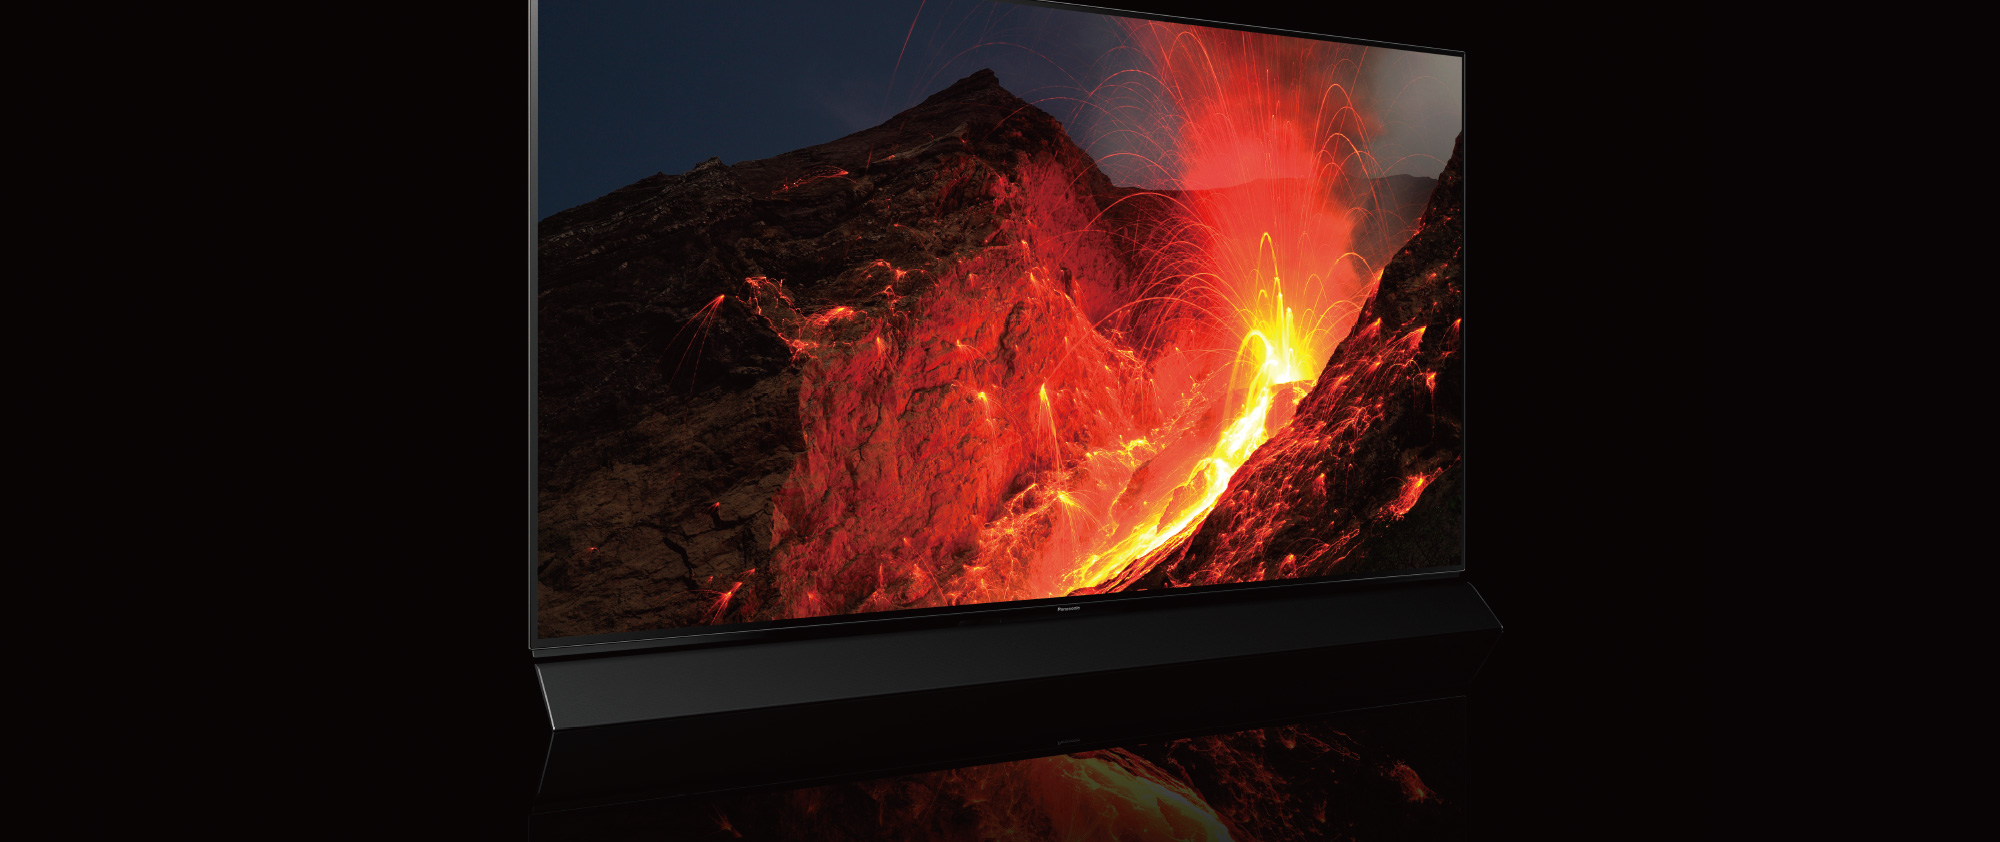 OLED - True Contrast, Revealing the most dynamic contrasts between dark and light.  - Panasonic TV